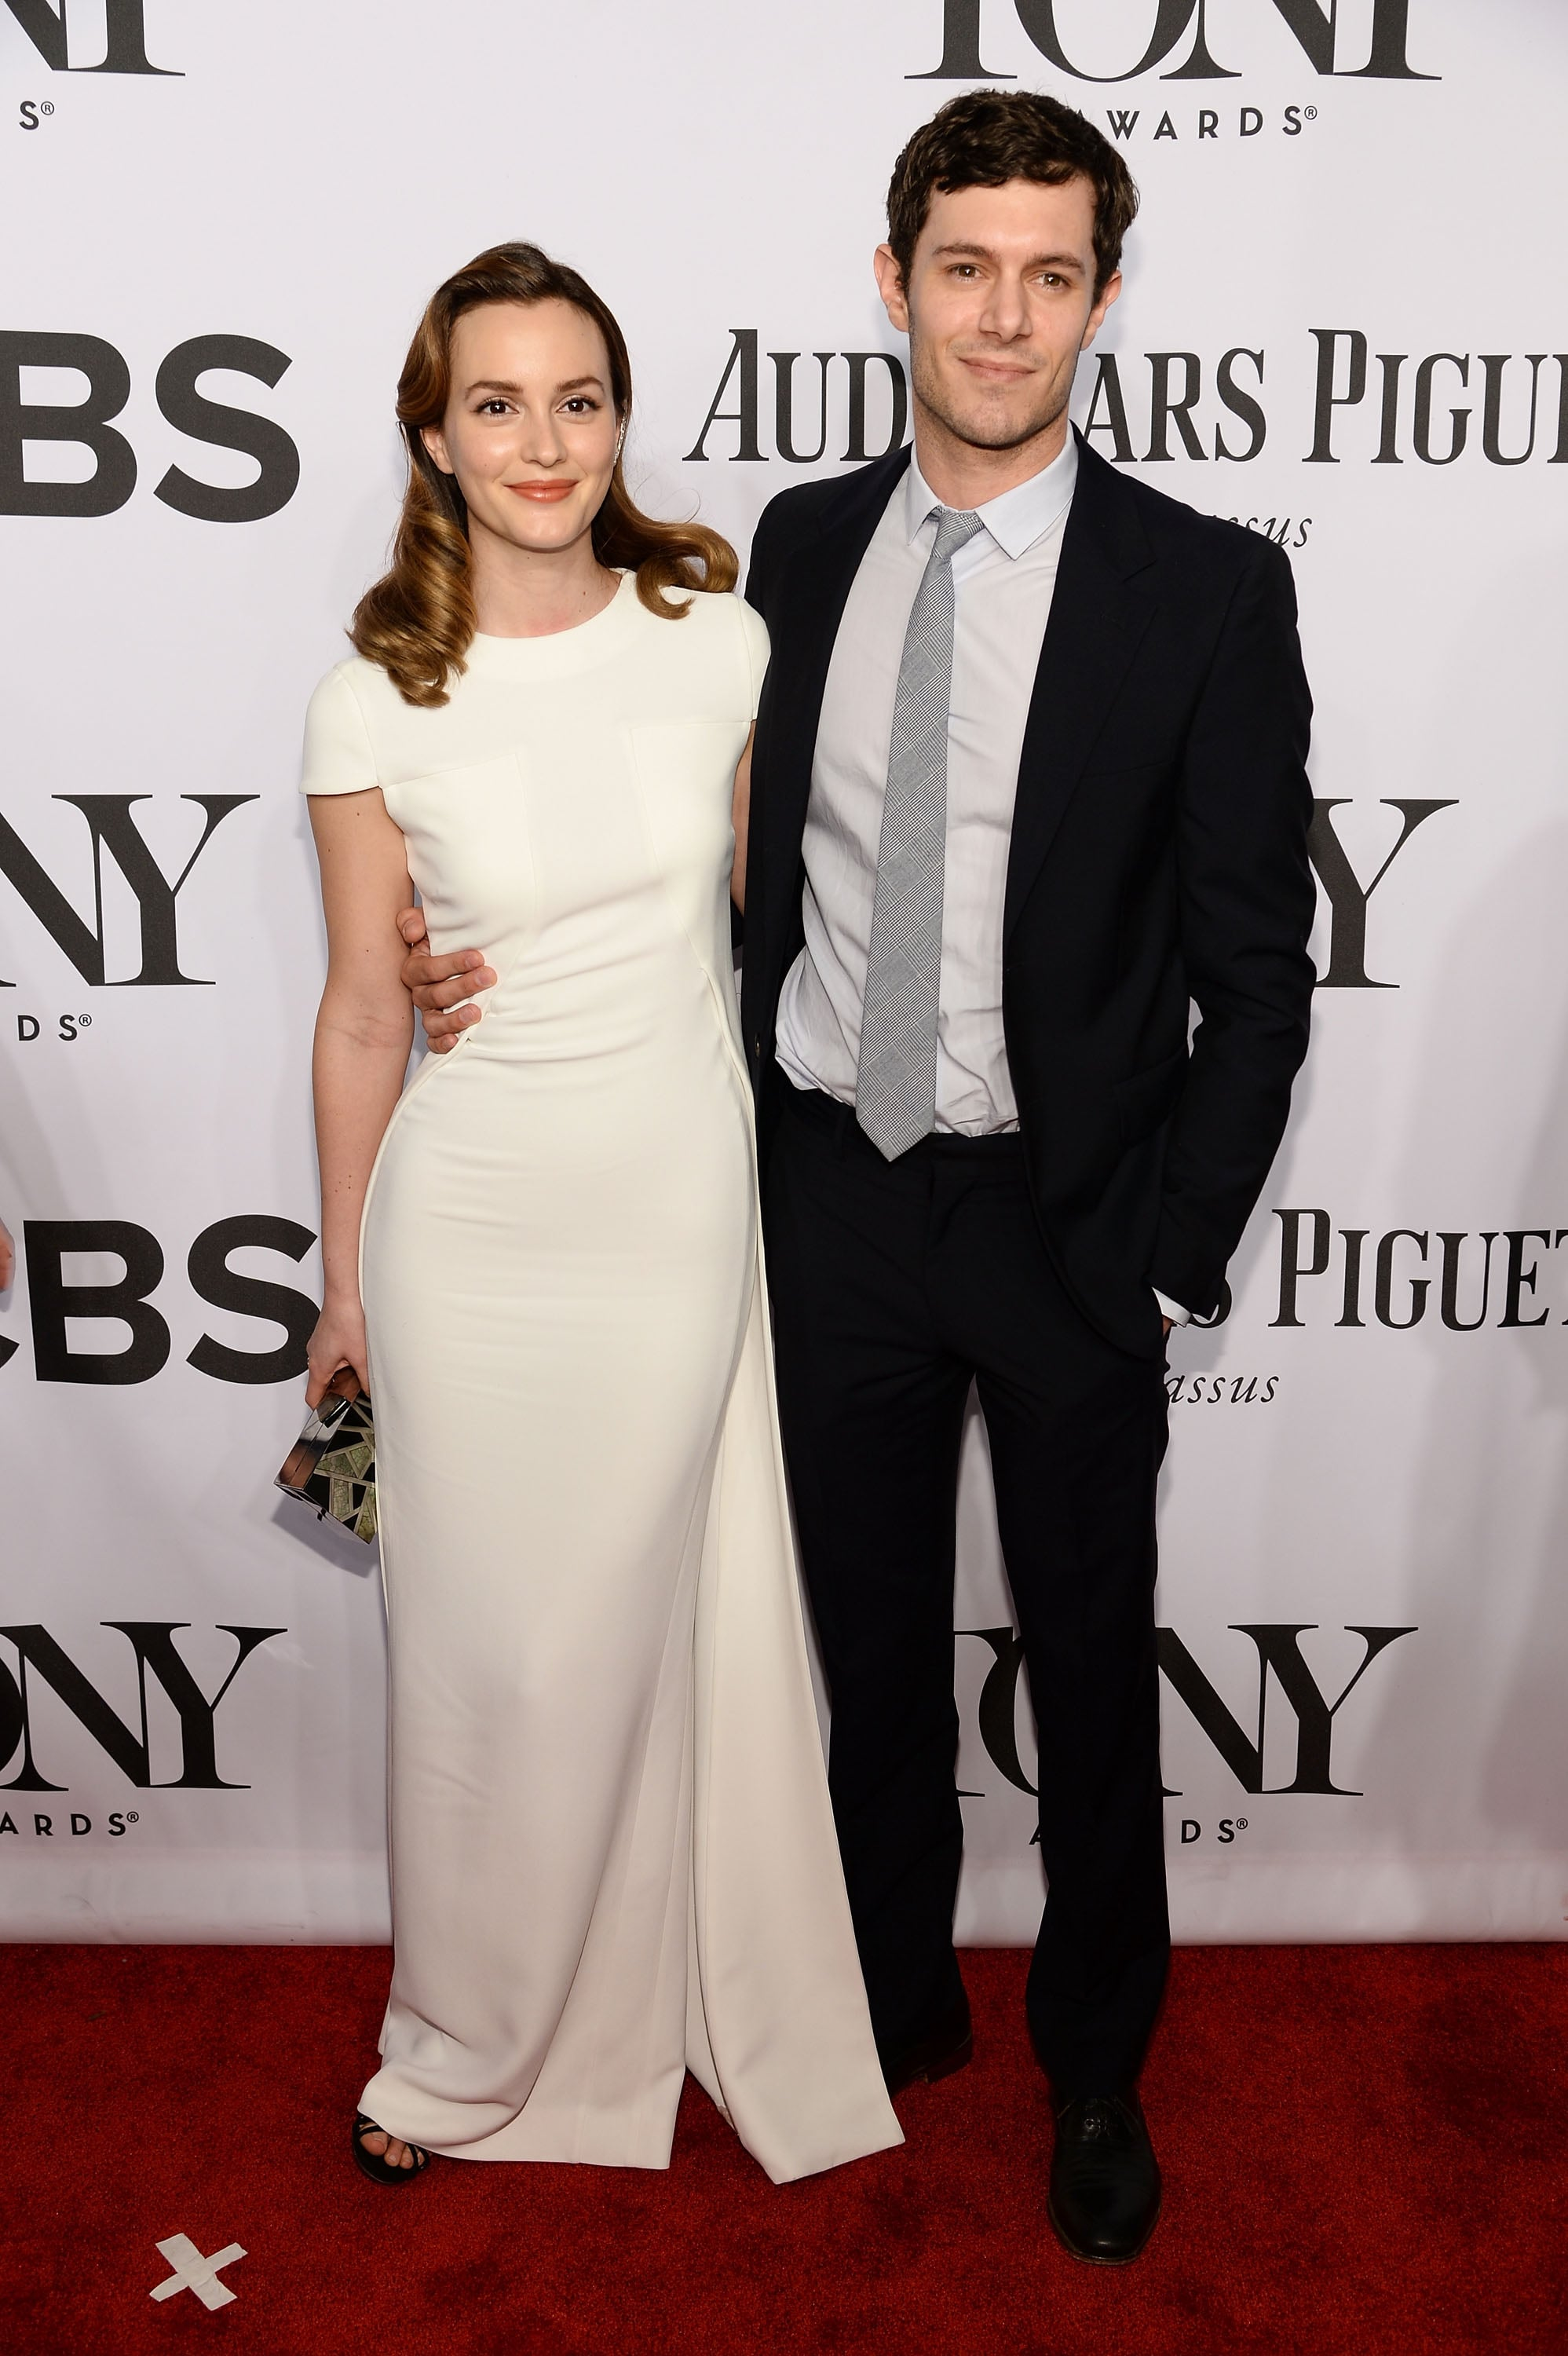 Leighton Meester and Adam Brody walked the carpet together.